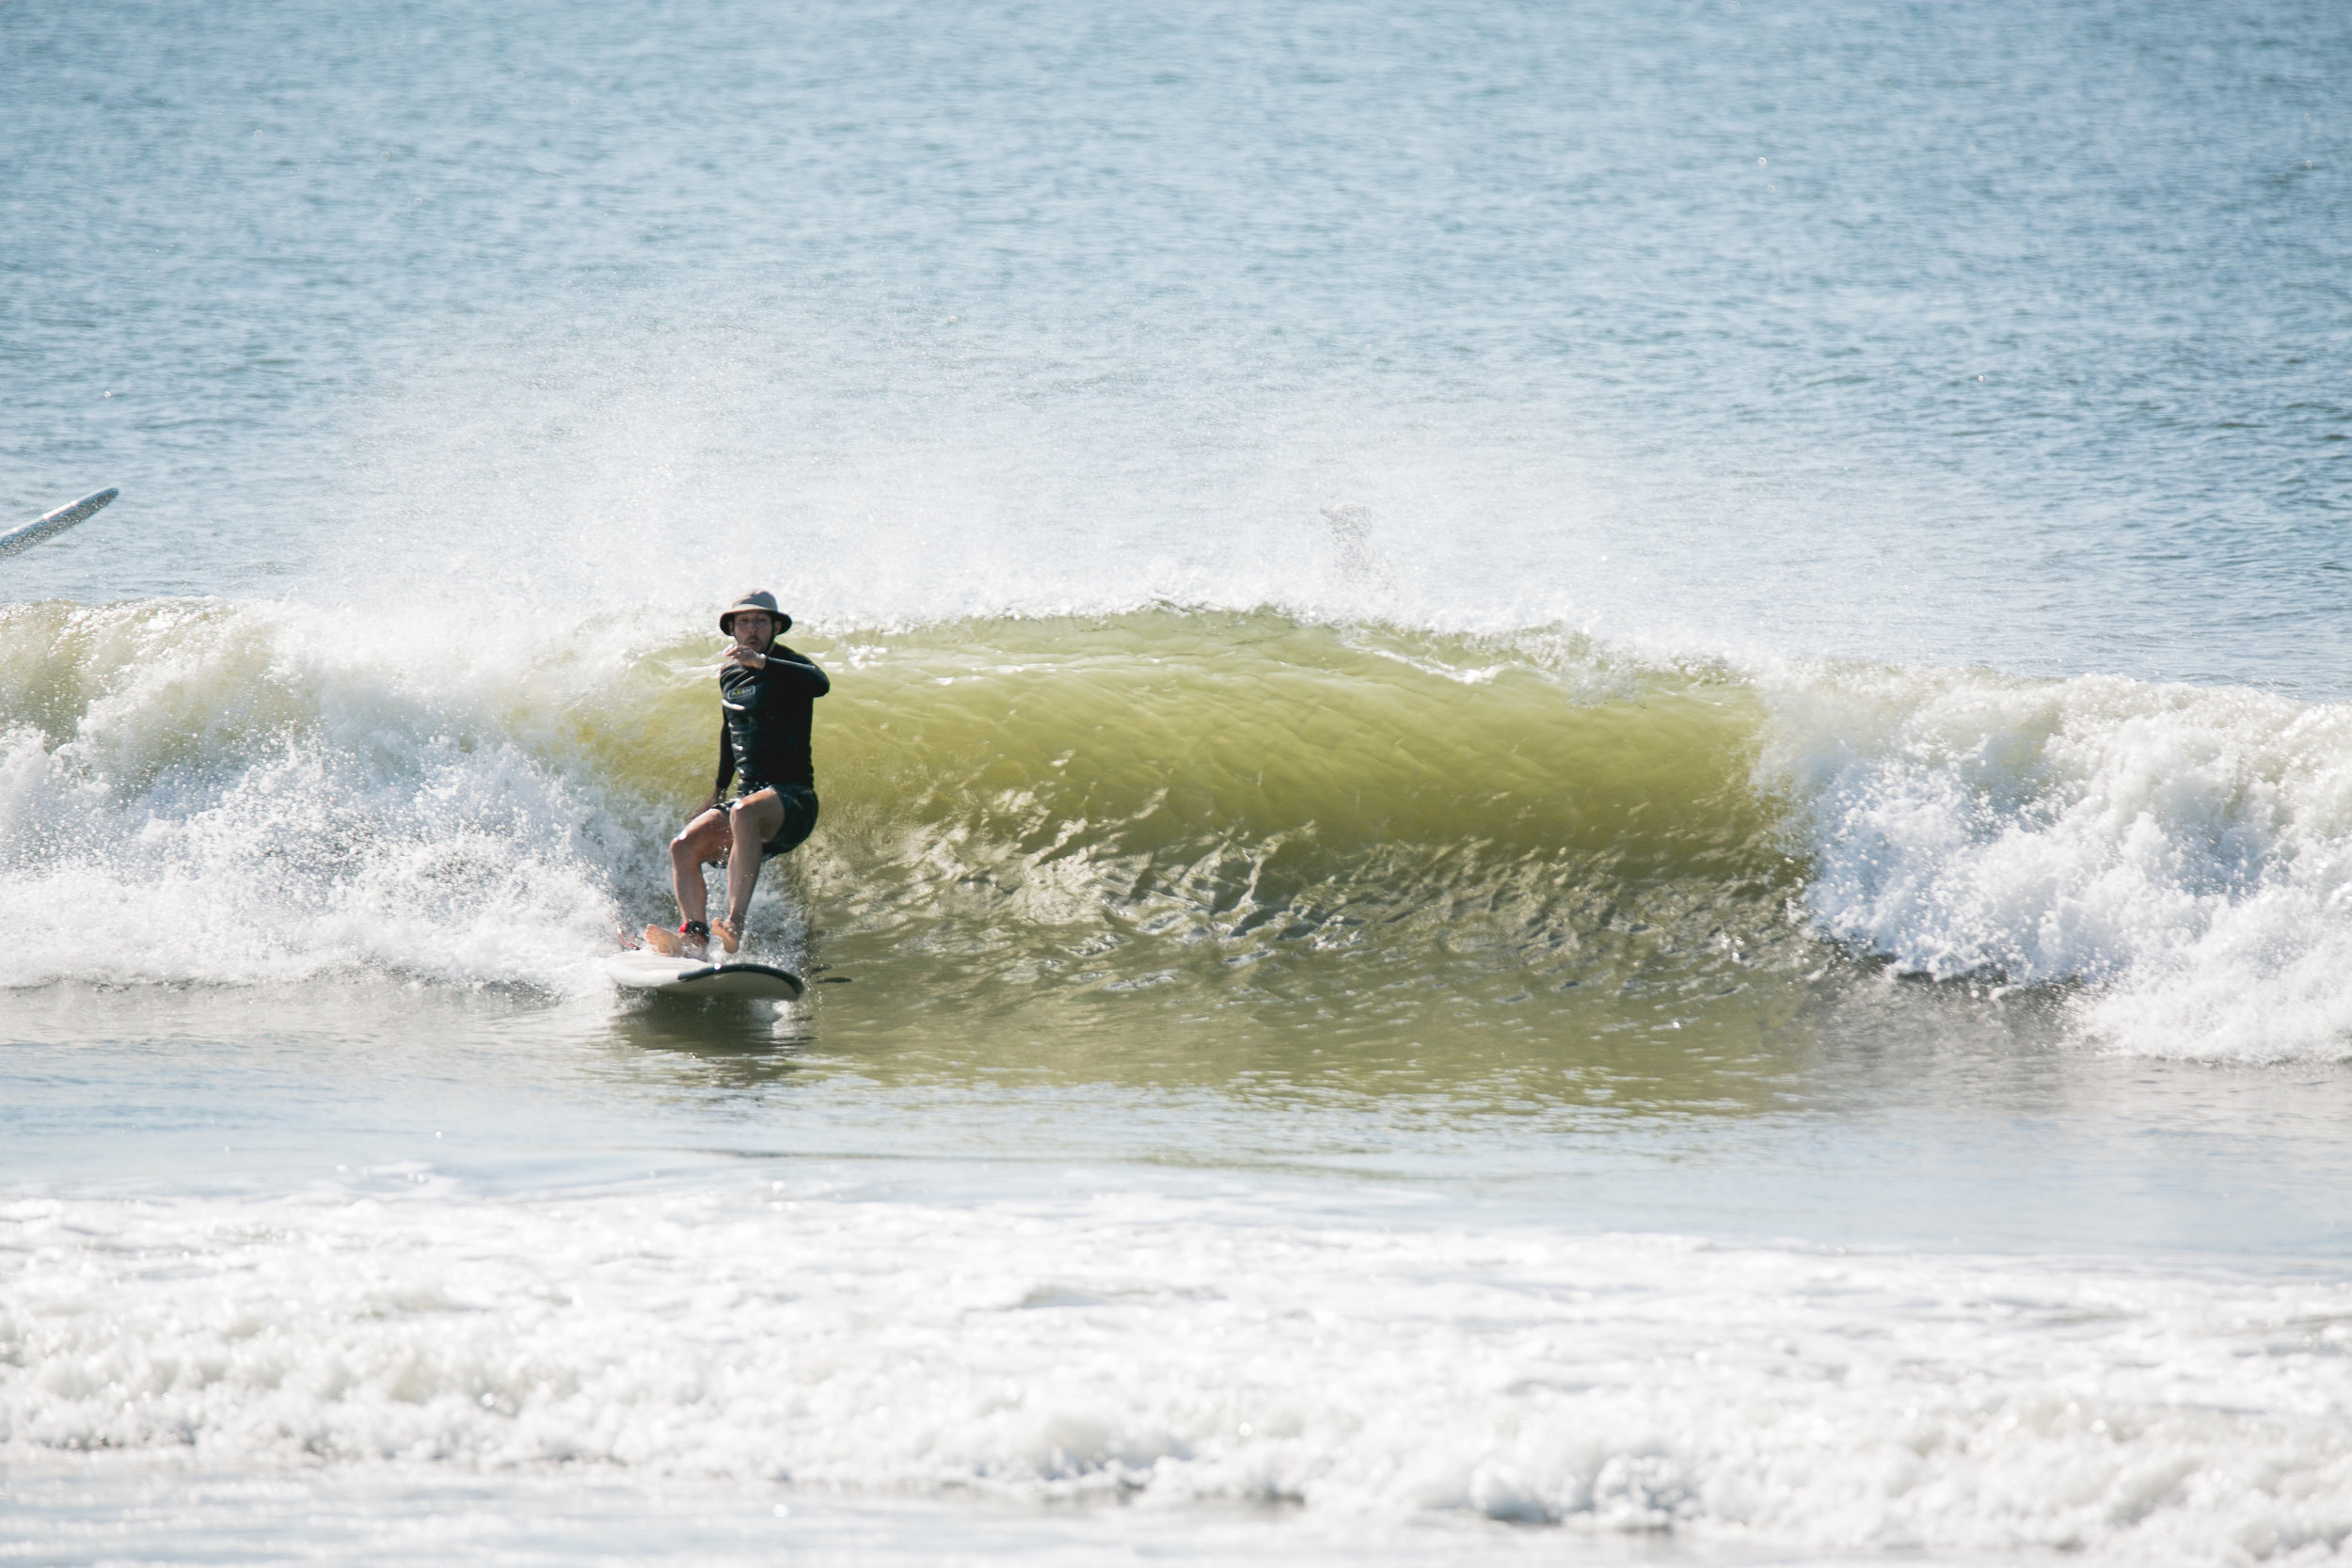 Womens Surf Film Festival in Rockaway Beach by Kelee Bovelle 2.jpg